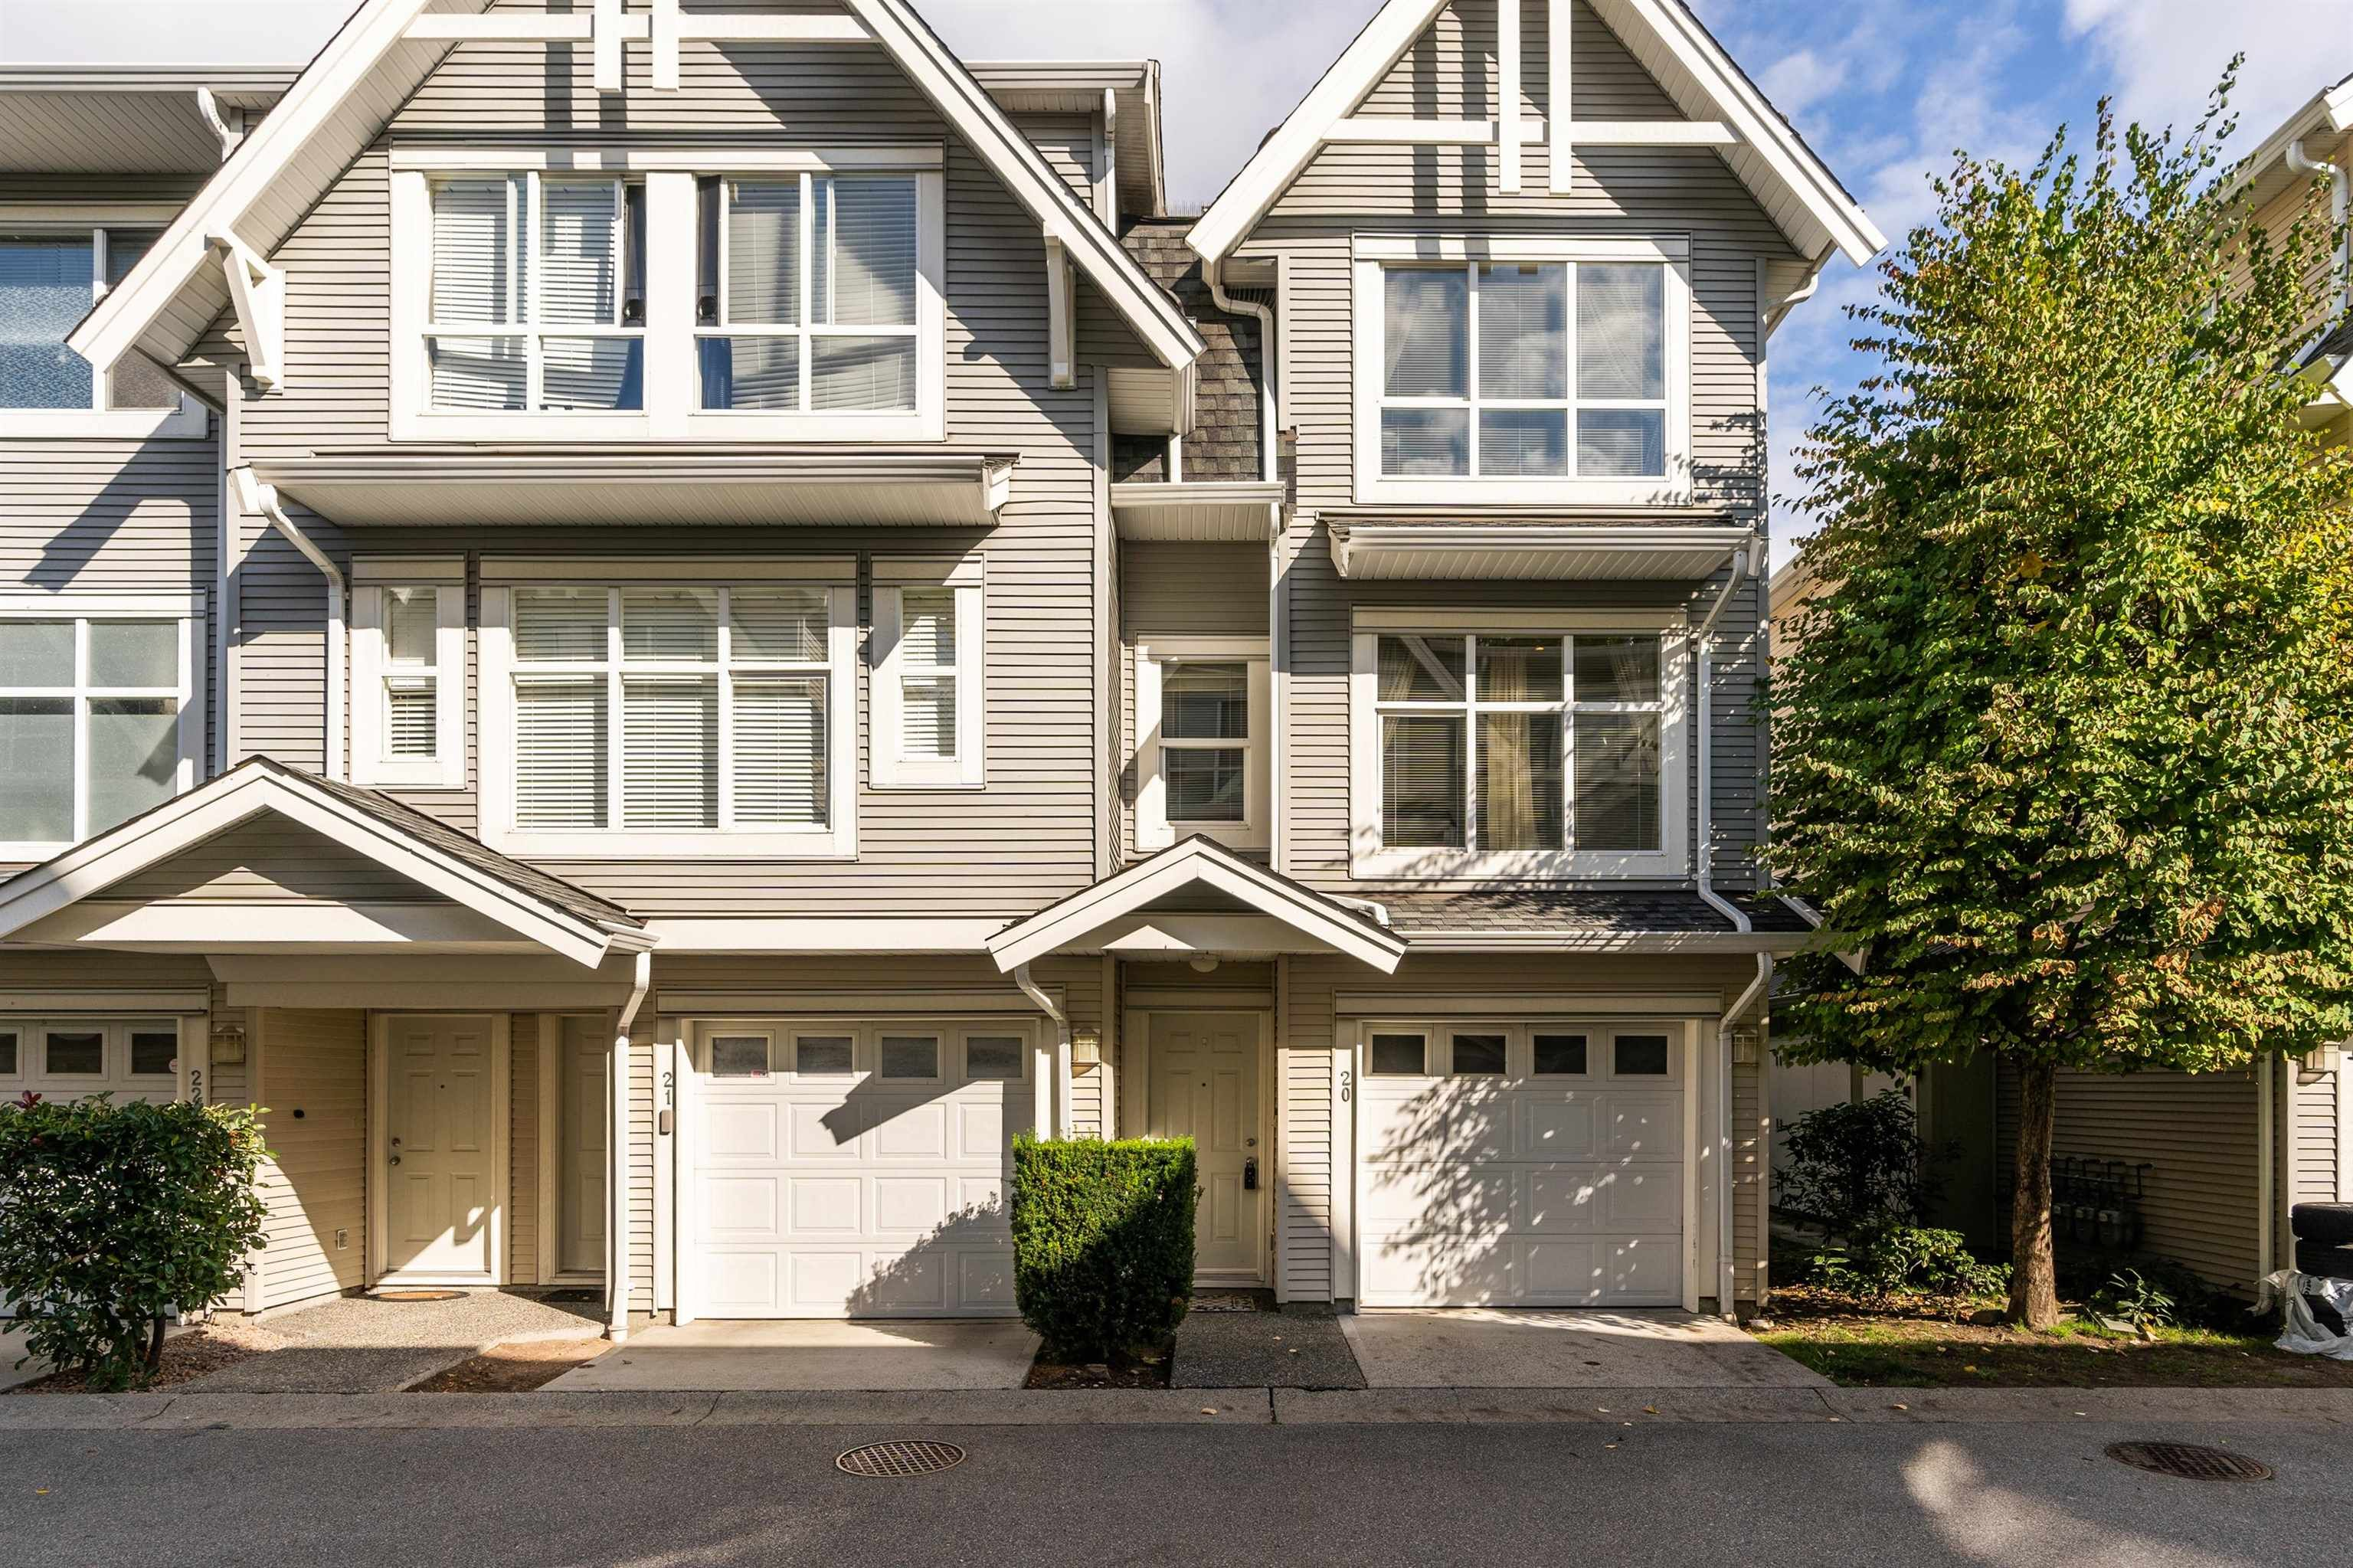 """Main Photo: 20 6415 197 Street in Langley: Willoughby Heights Townhouse for sale in """"Logans Reach"""" : MLS®# R2620798"""